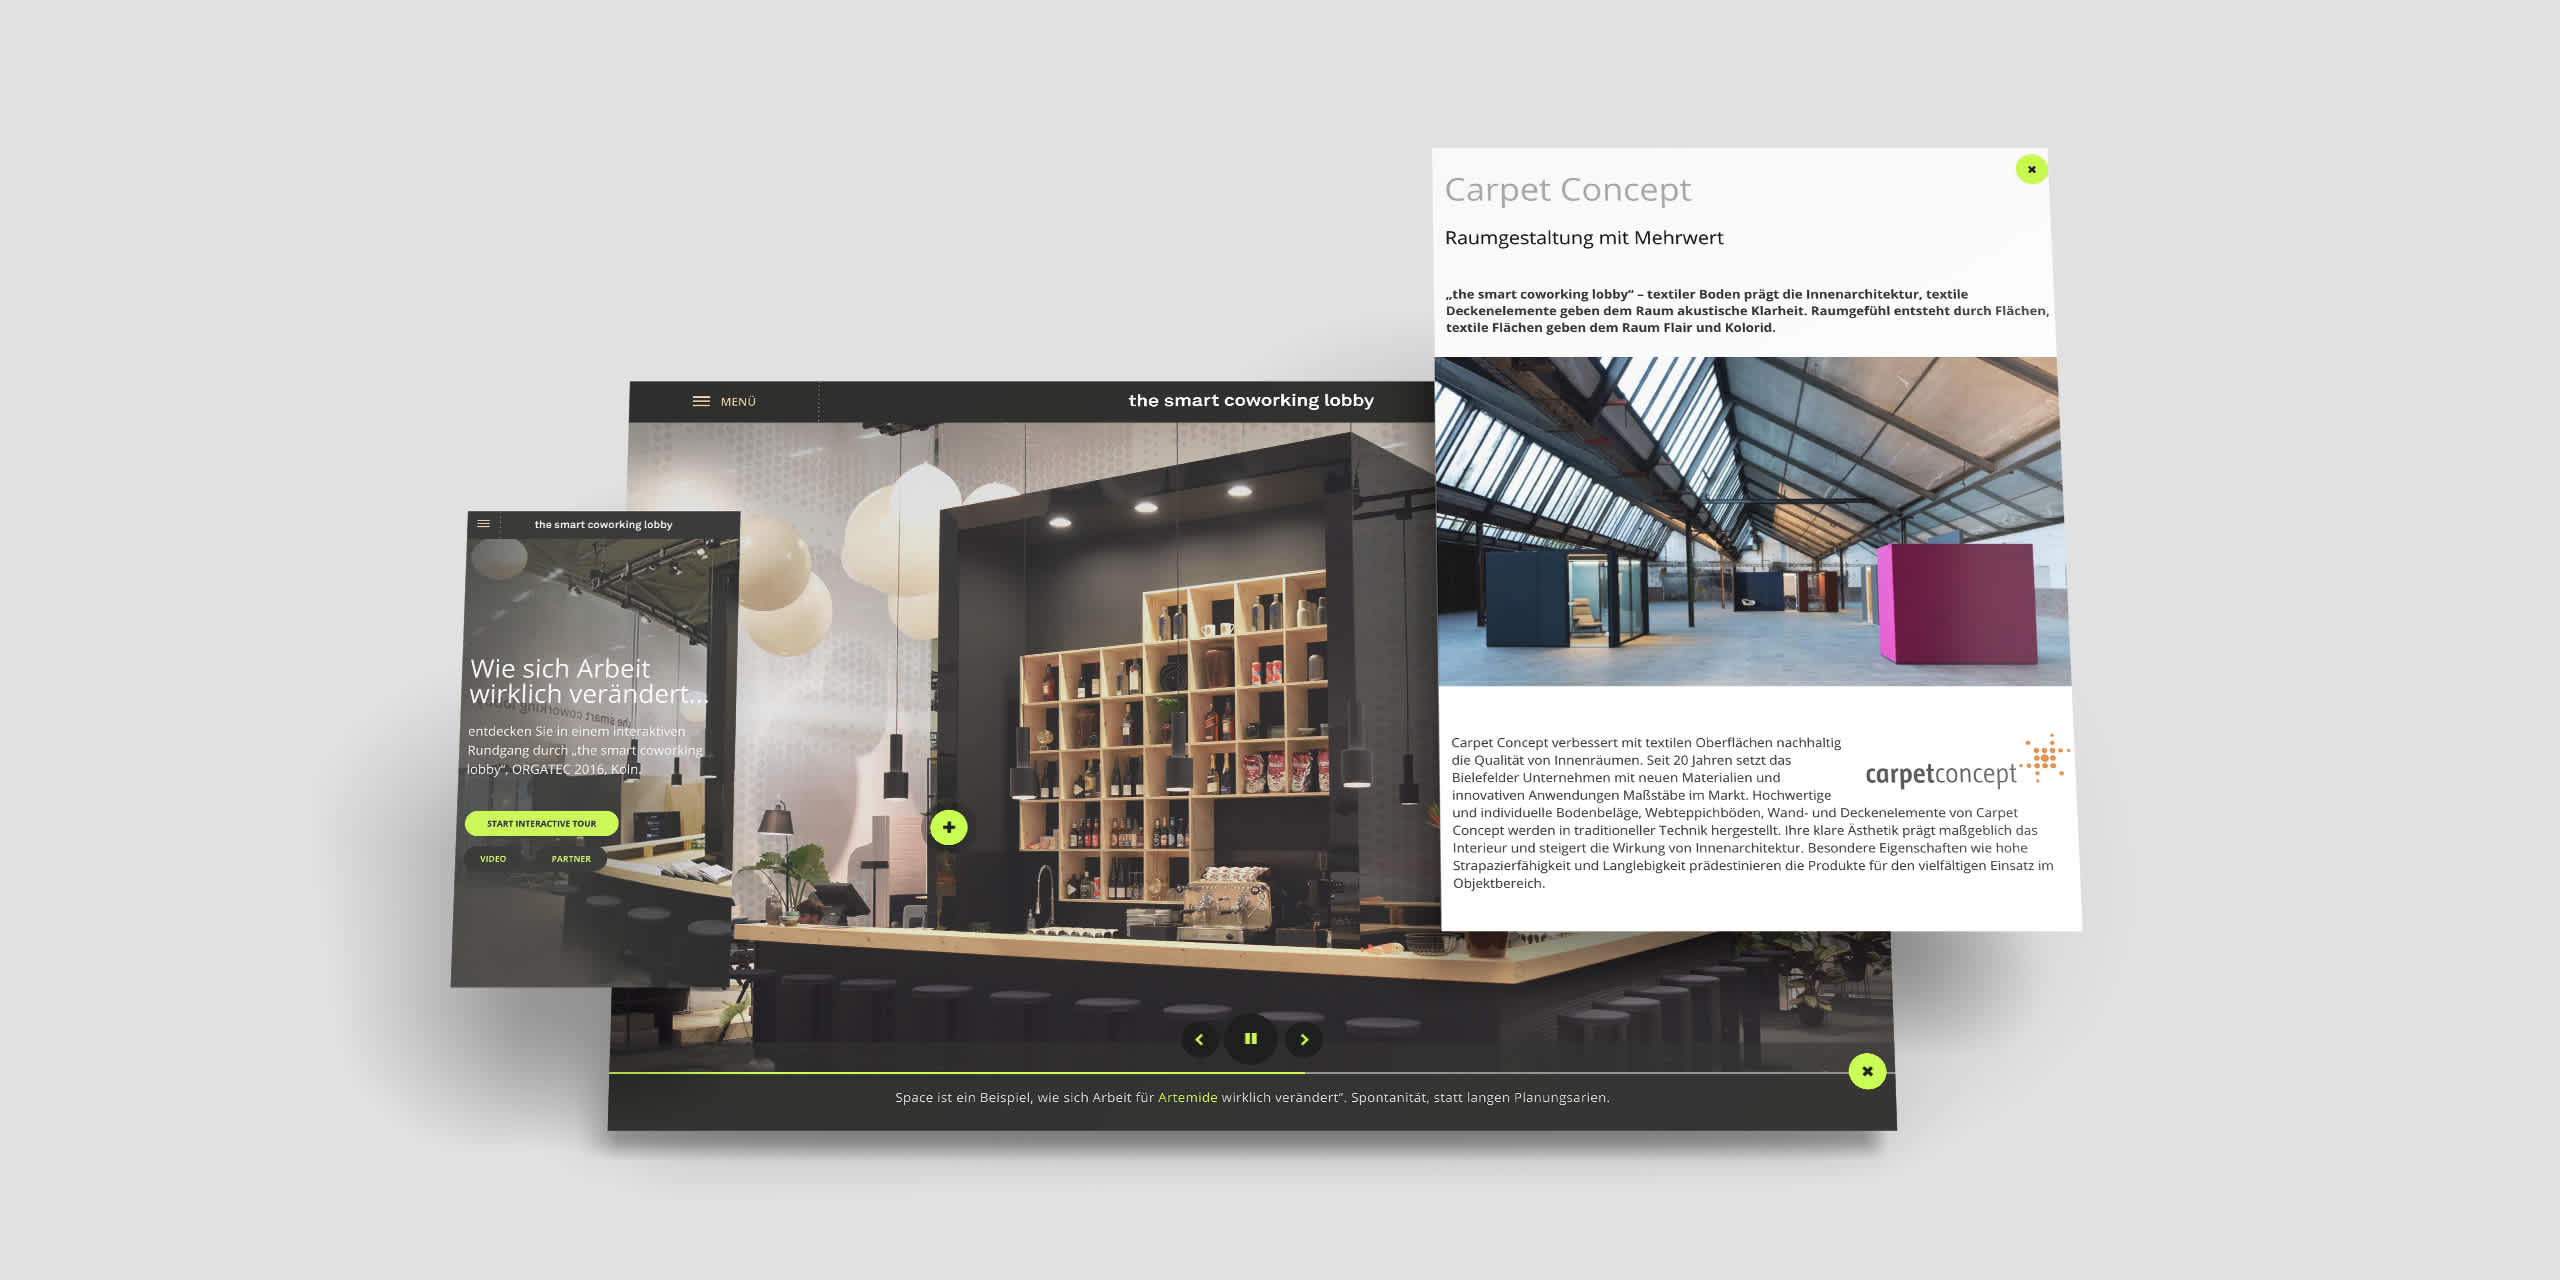 rereferenz-designoffices-smart-coworking-lobby-desktop